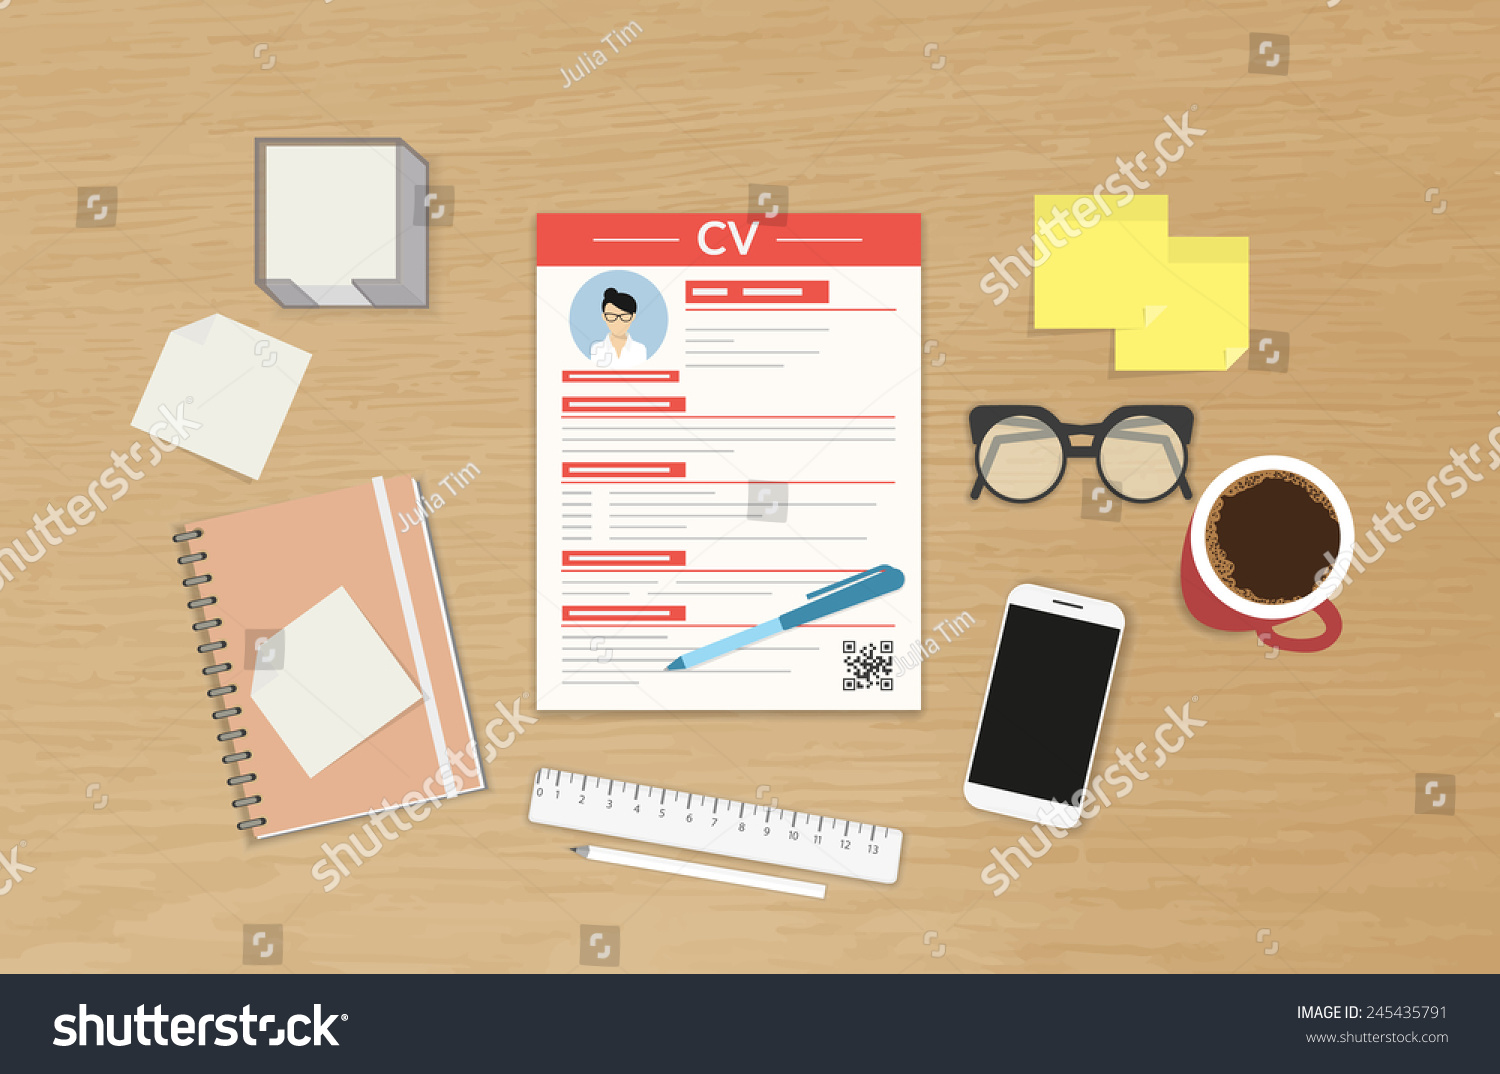 realistic desktop design cv template vector stock vector 245435791